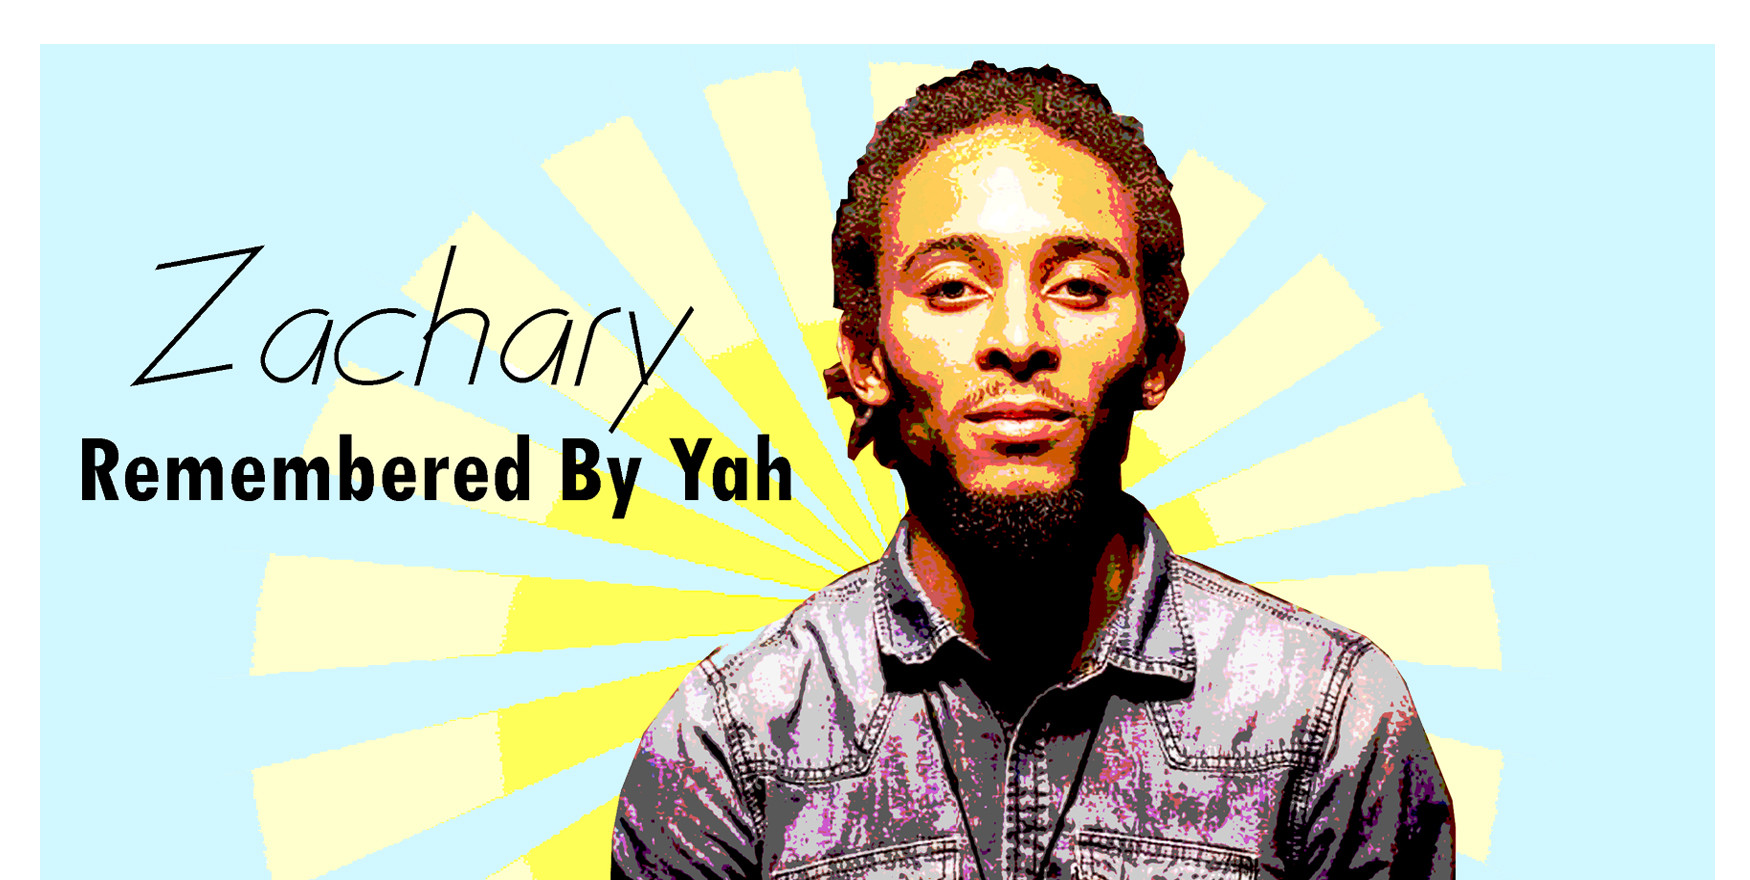 Zachary Remembered By Yah Release